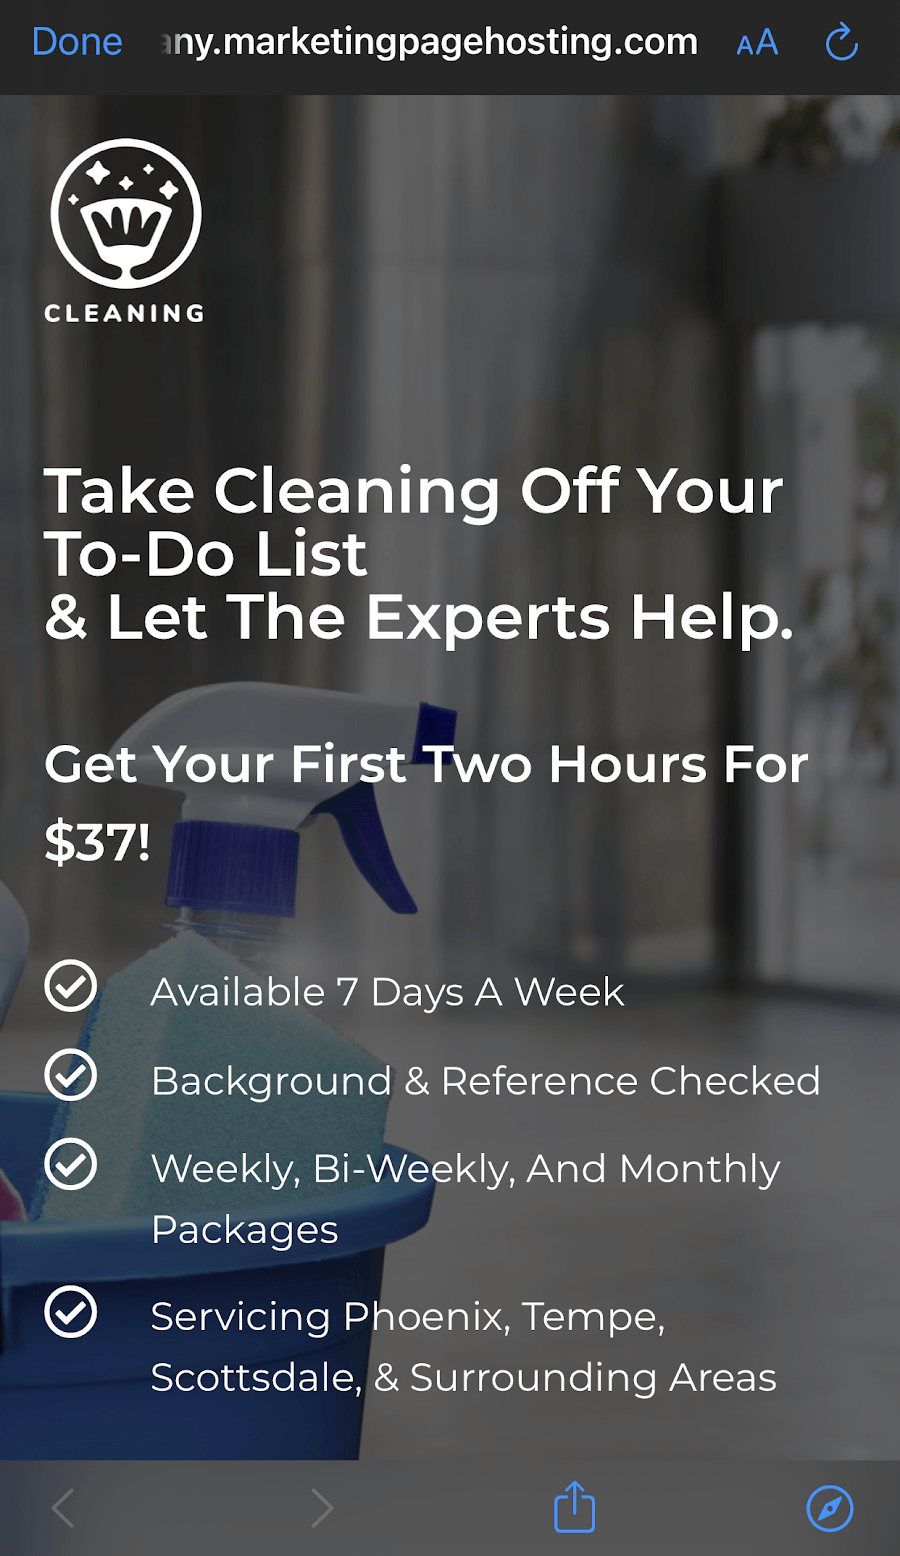 A mobile optimized site for a cleaning company.